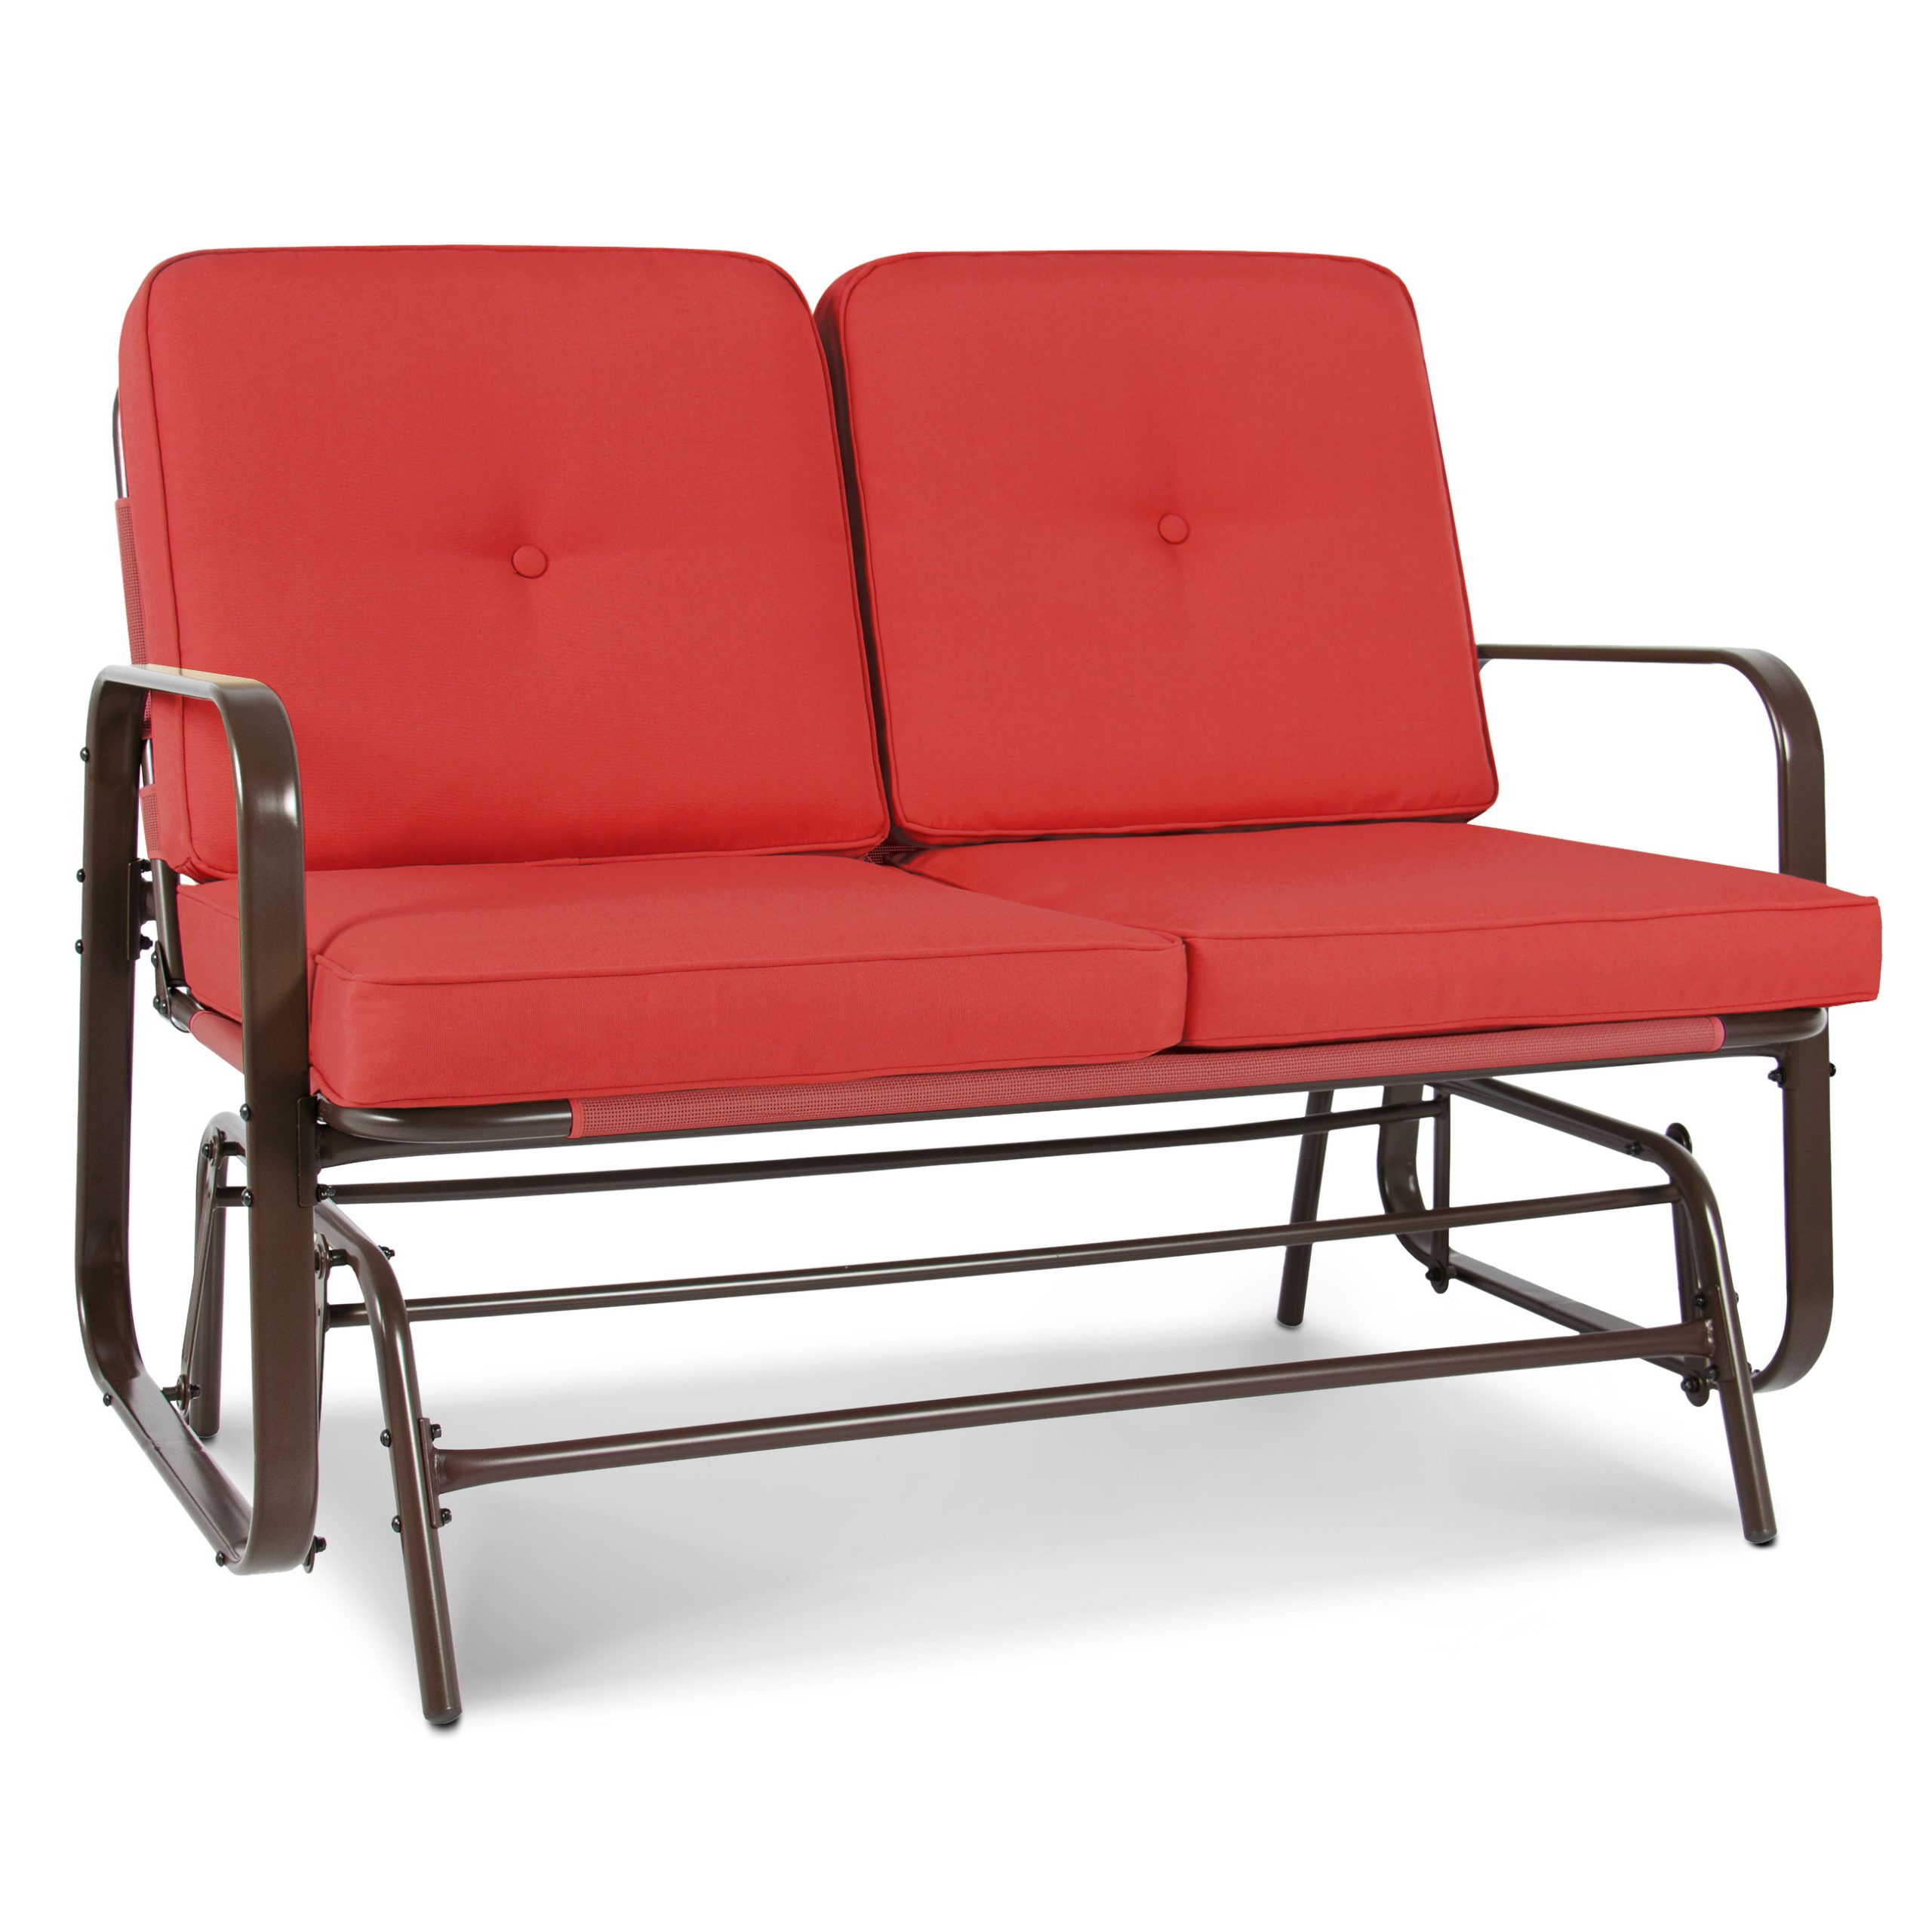 Best Choice Products 2 Person Outdoor Patio Glider Loveseat Rocking Chair W/ Uv Resistant Cushions – Red Orange Regarding Loveseat Glider Benches With Cushions (View 19 of 25)